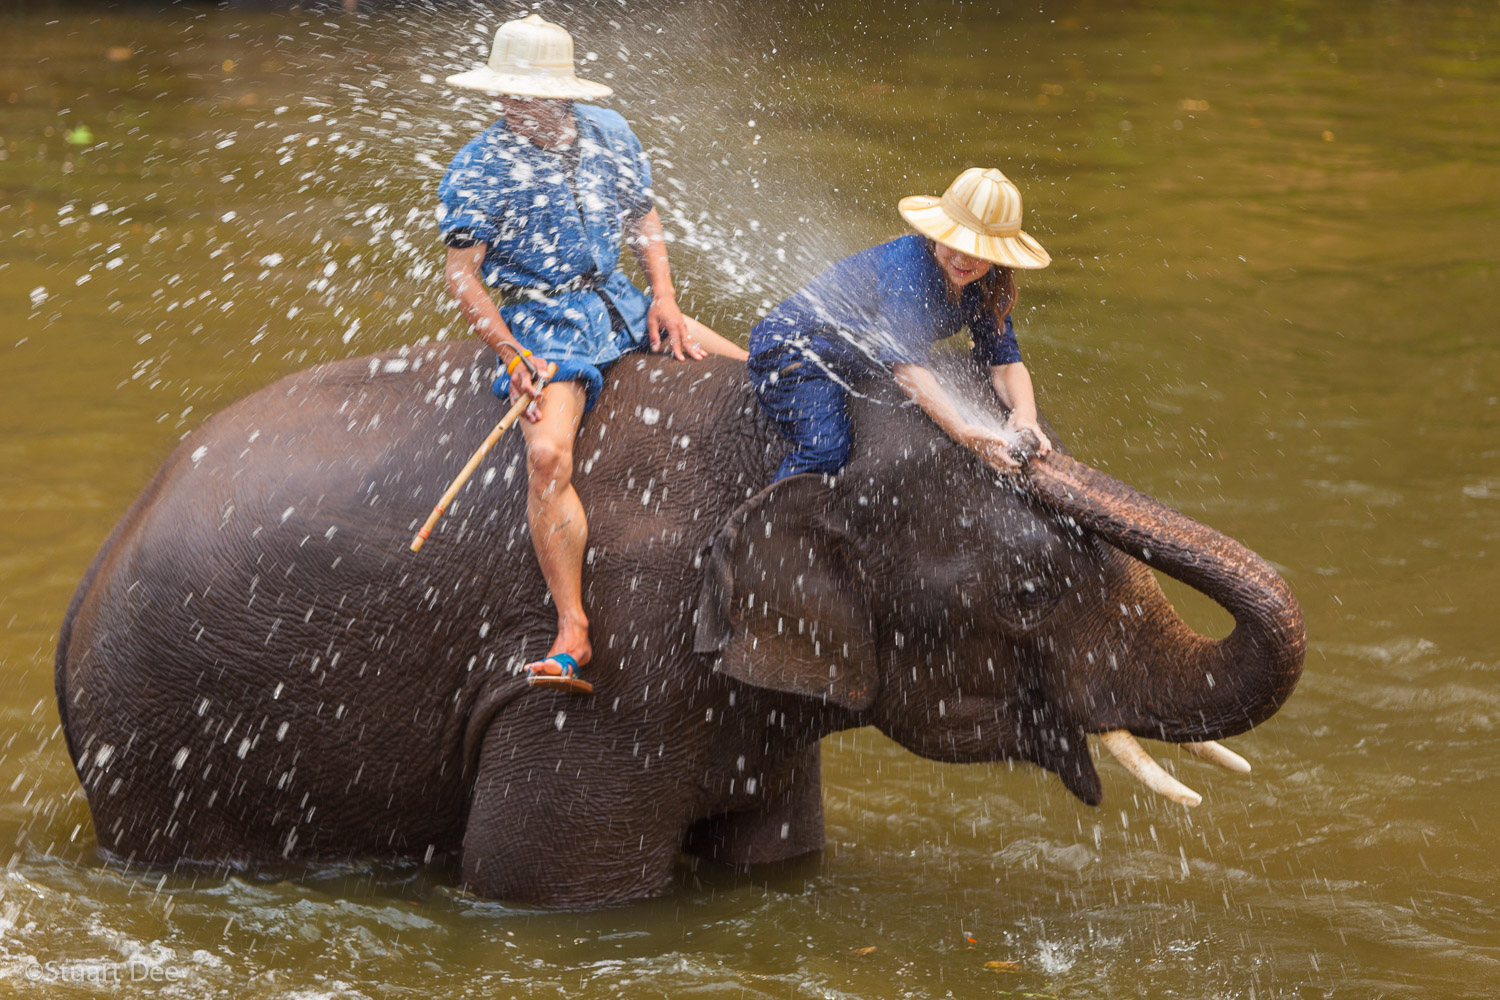 Mahouts washing elephants in river and playing, Lampang, Thailand